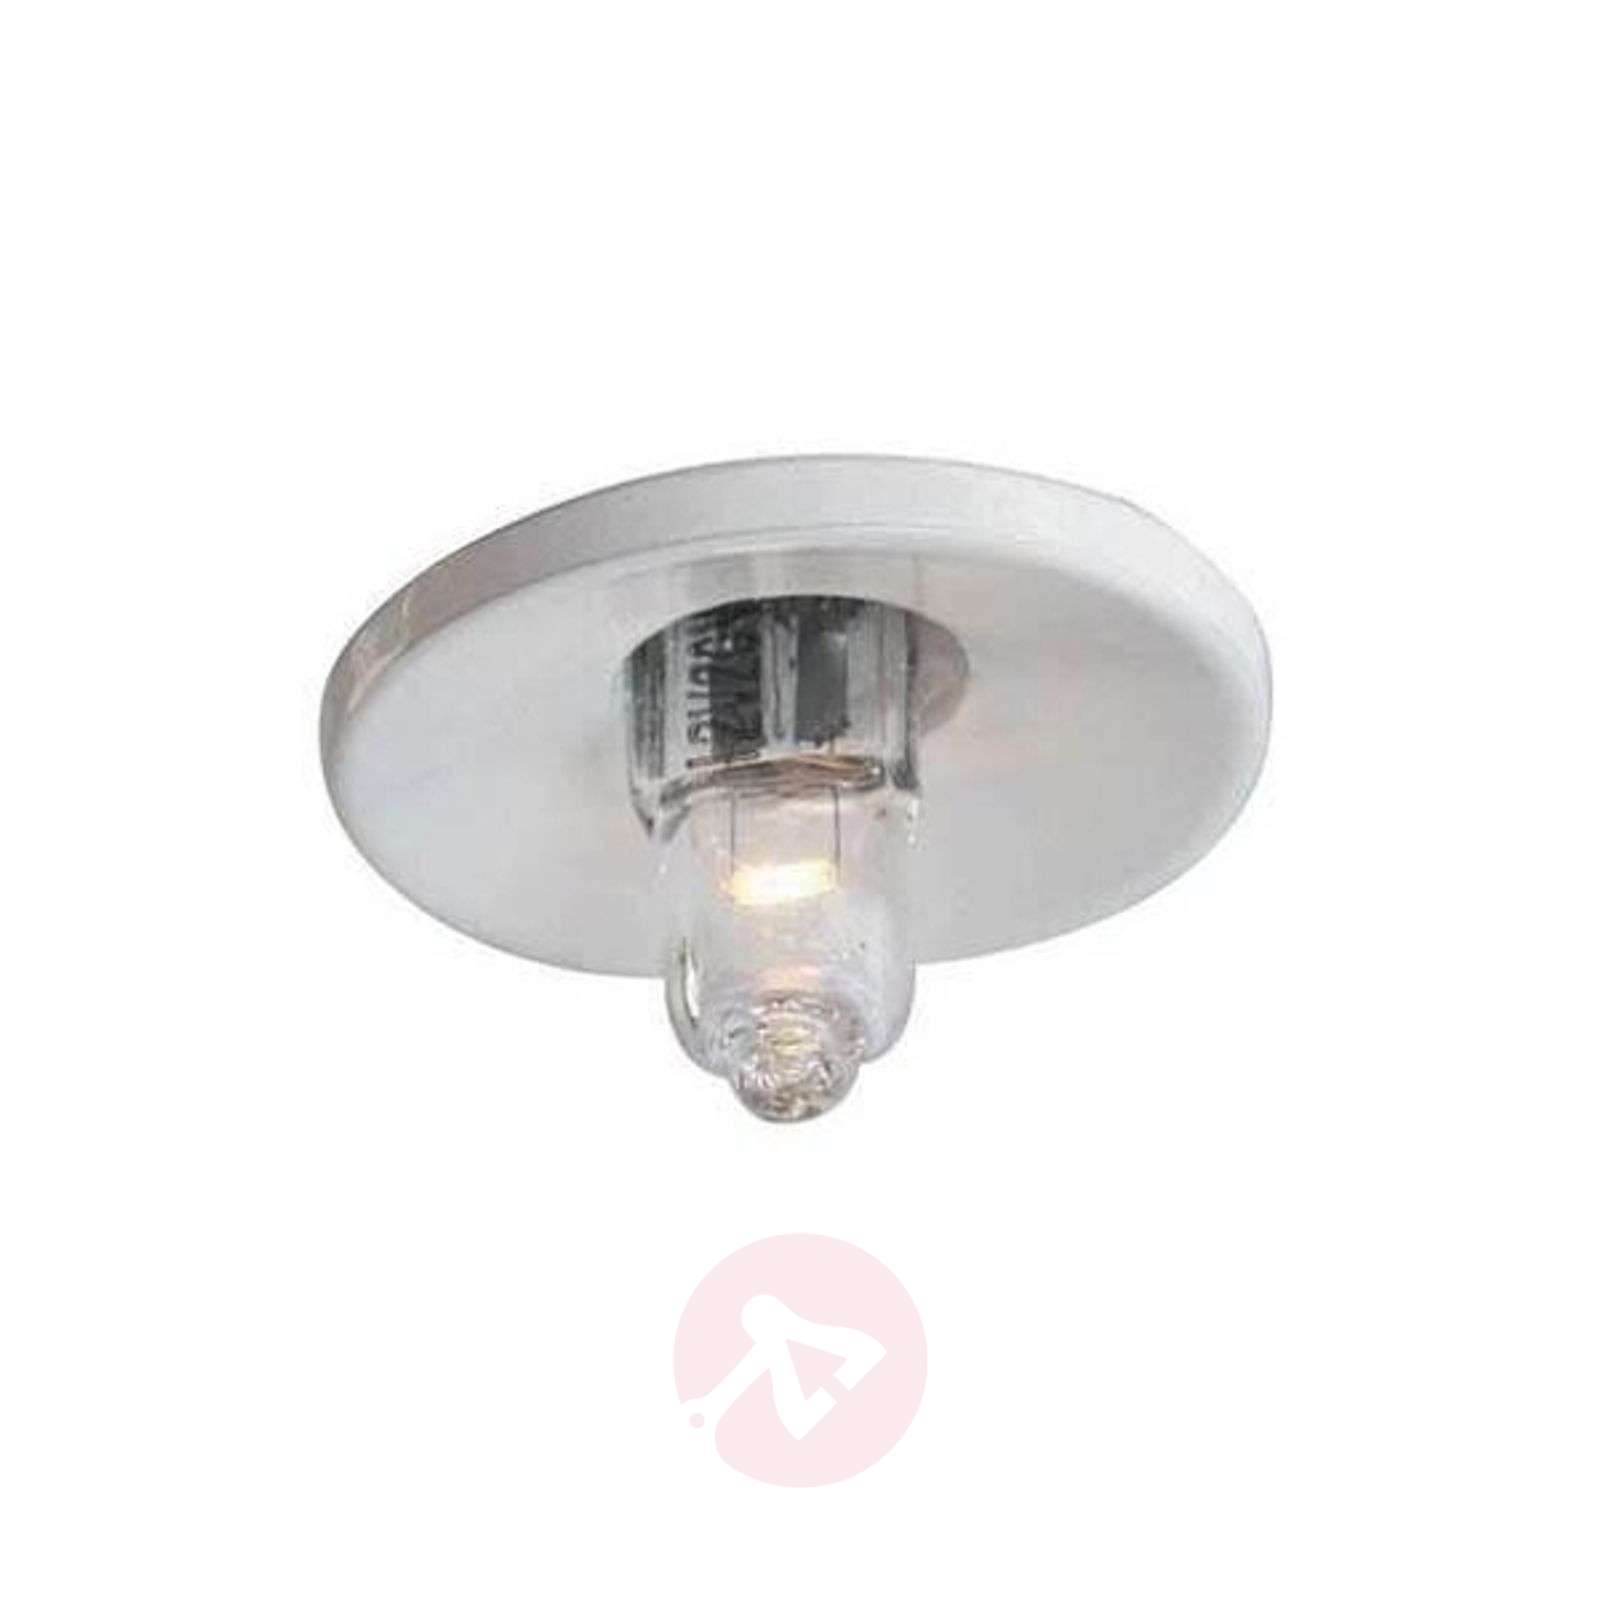 Lght Point decorativo bianco-2501621-01